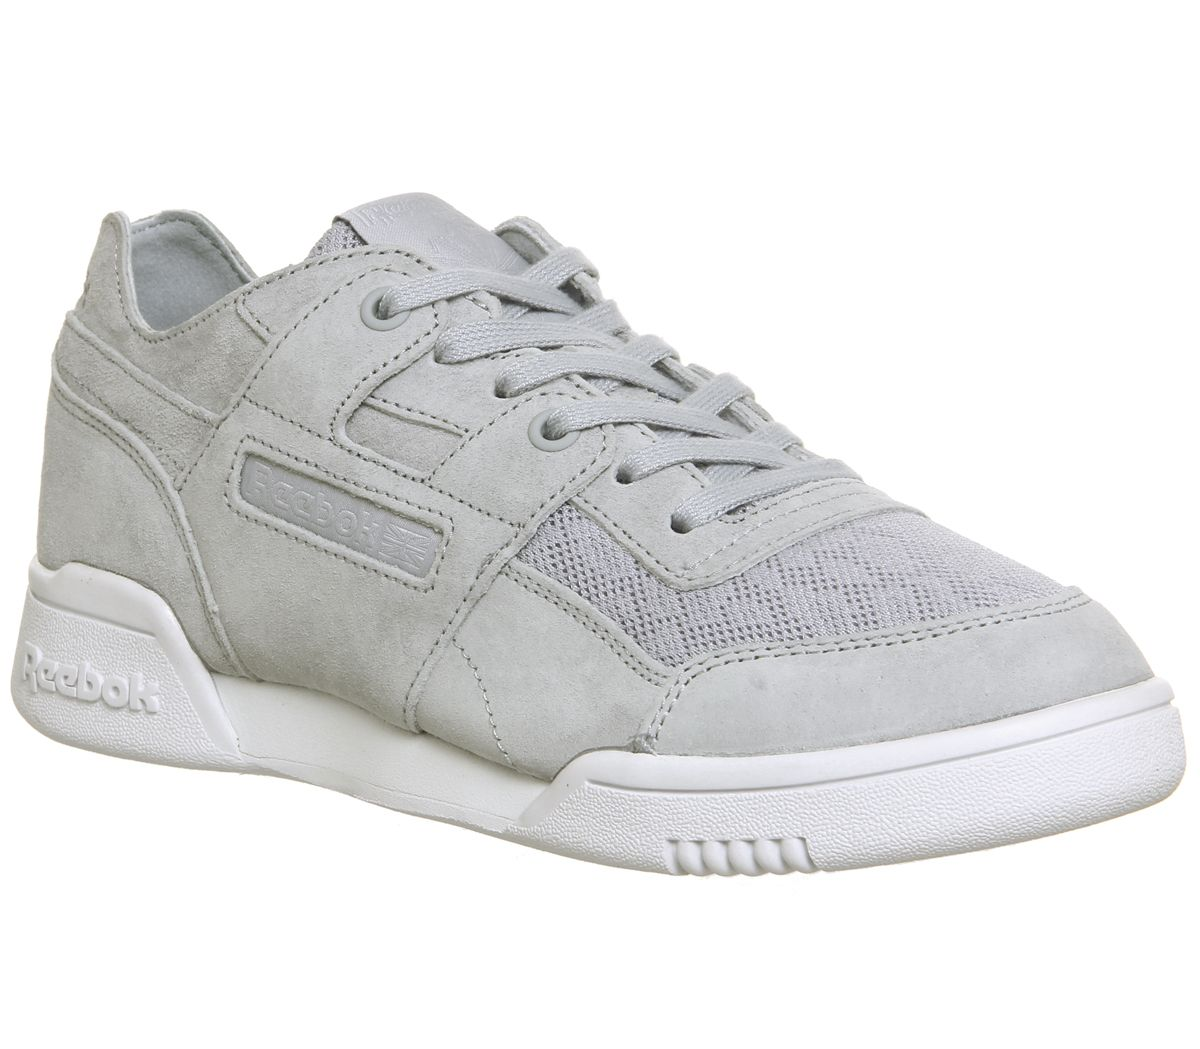 5779e03641a86 Reebok Workout Low Plus Trainers Cloud Grey White - Hers trainers